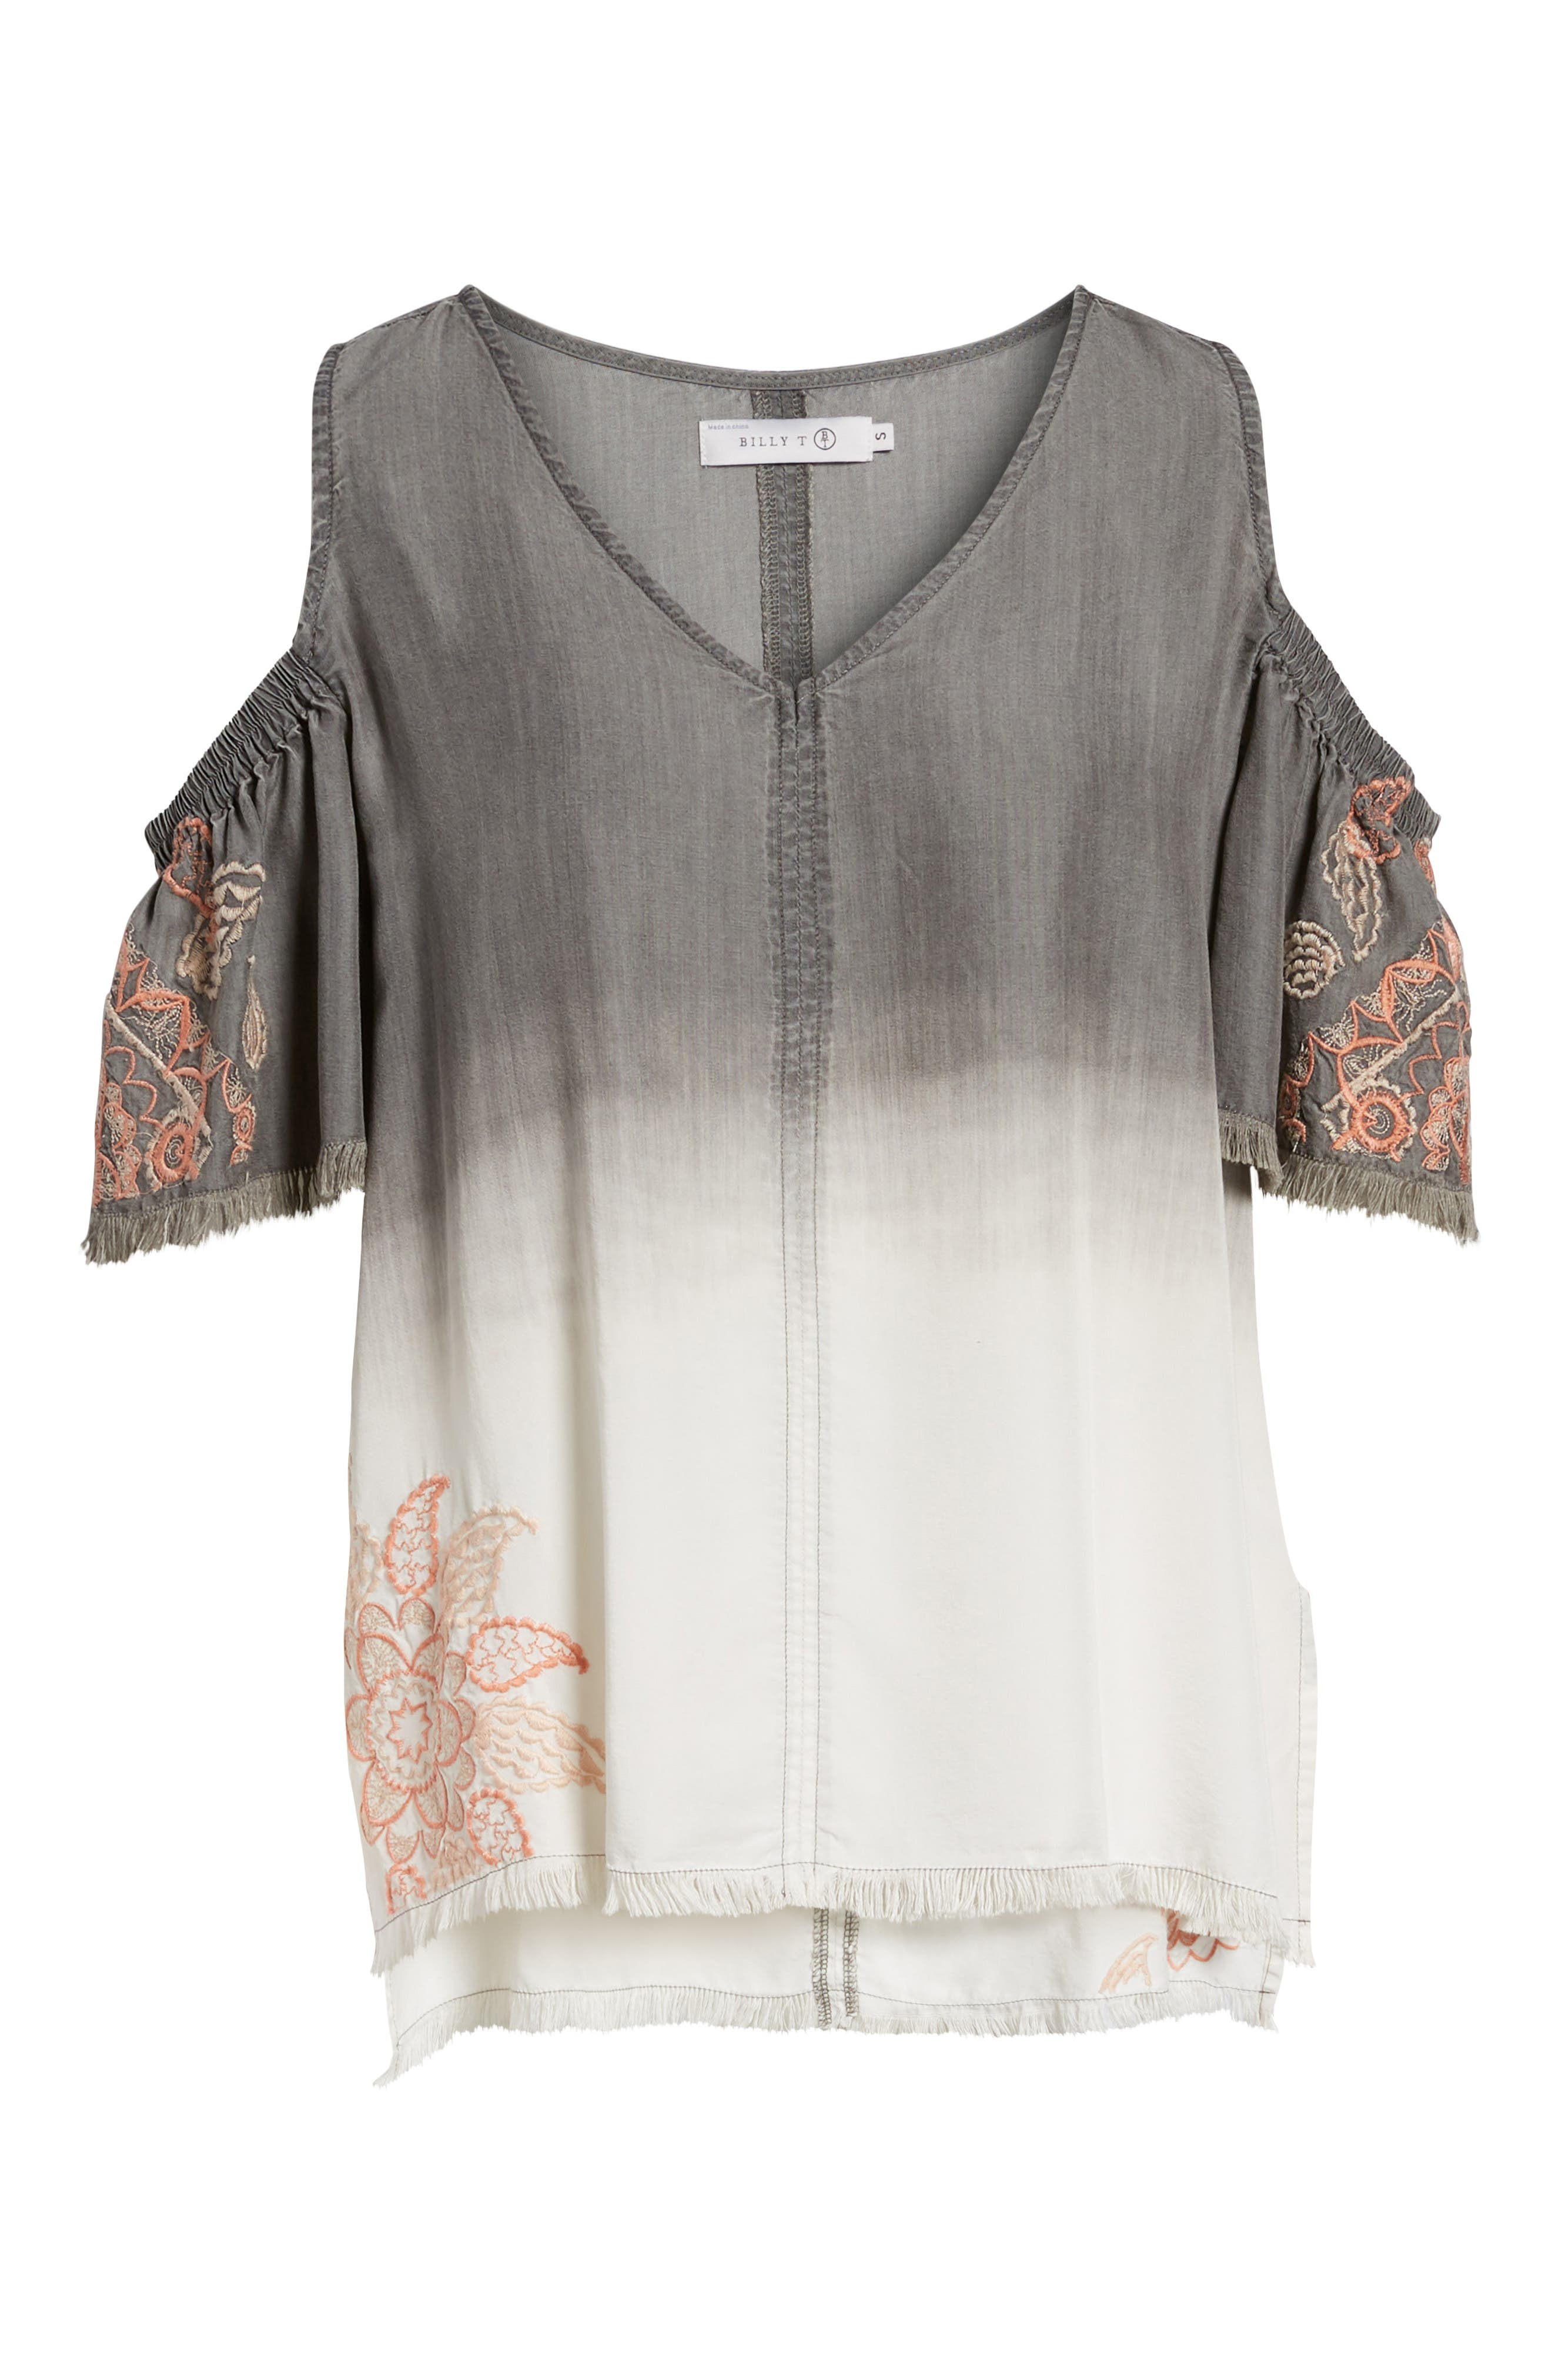 Dip Dye Embroidered Cold Shoulder Blouse,                             Alternate thumbnail 7, color,                             GREY WHITE EMBROIDER